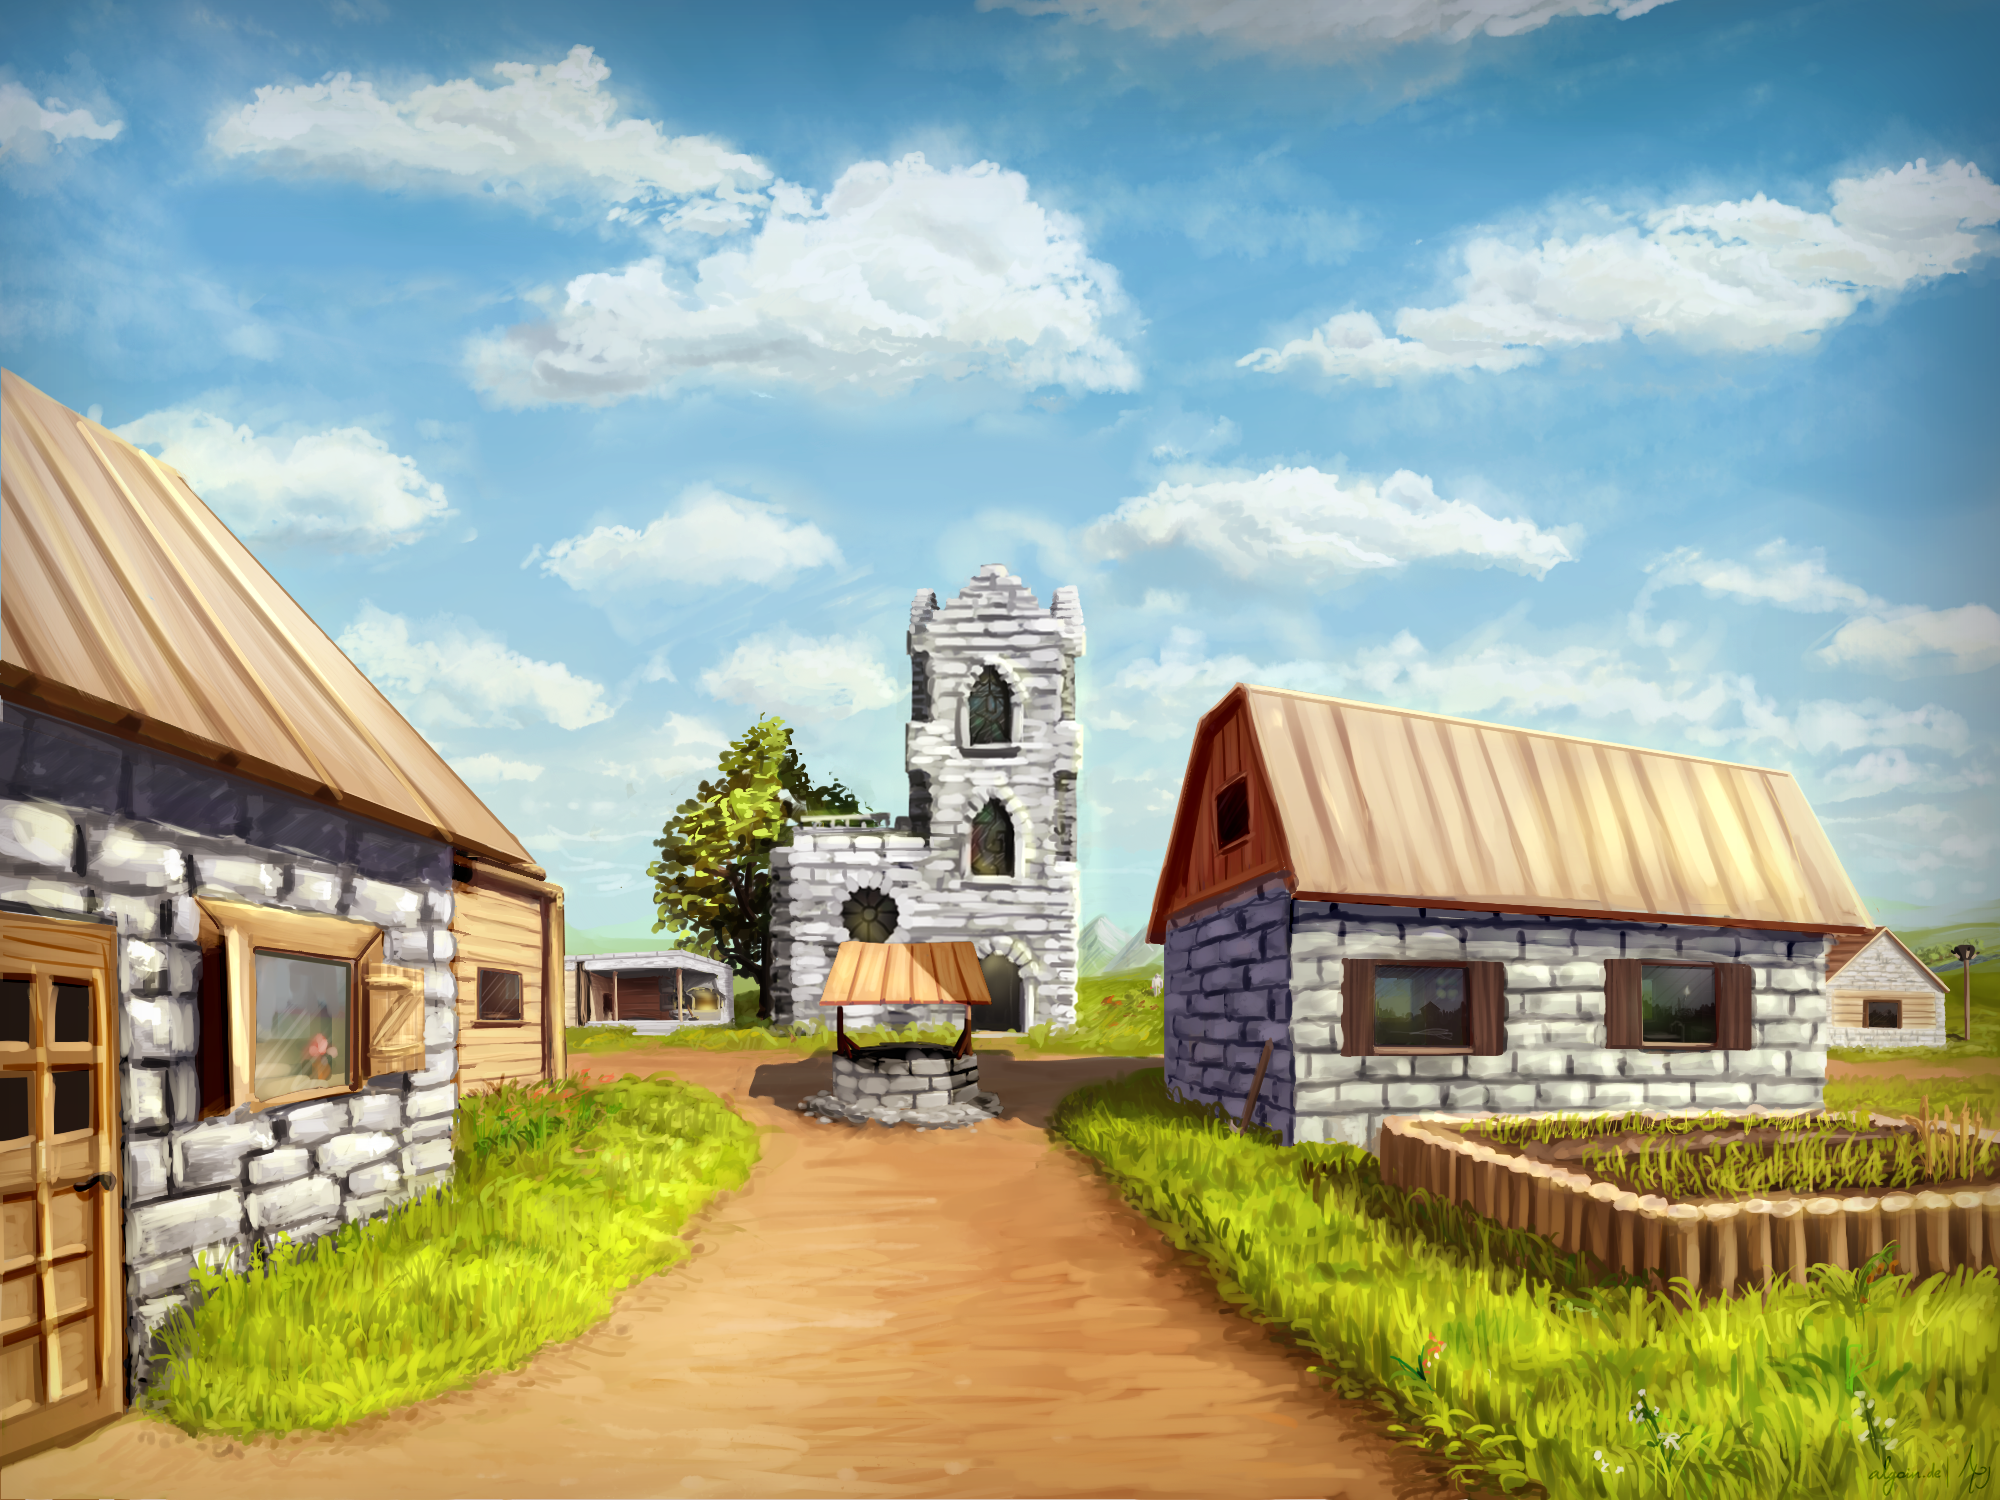 Minecraft Village Wallpaper Image